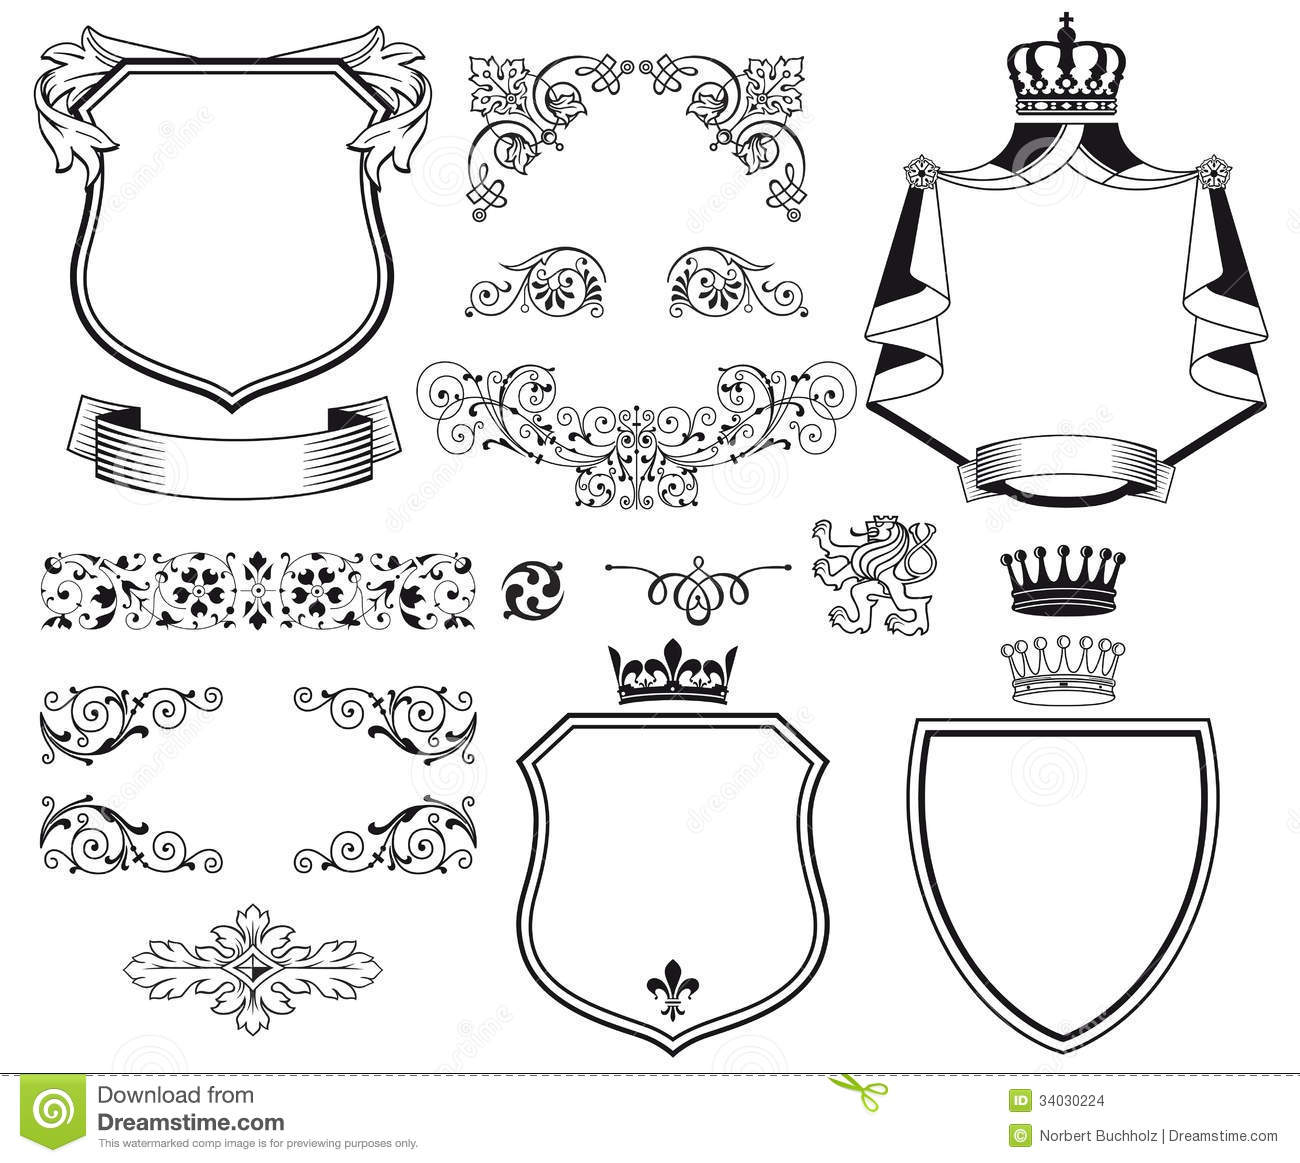 Heraldic Coat Of Arms Stock Vector Illustration Of Fancy 34030224